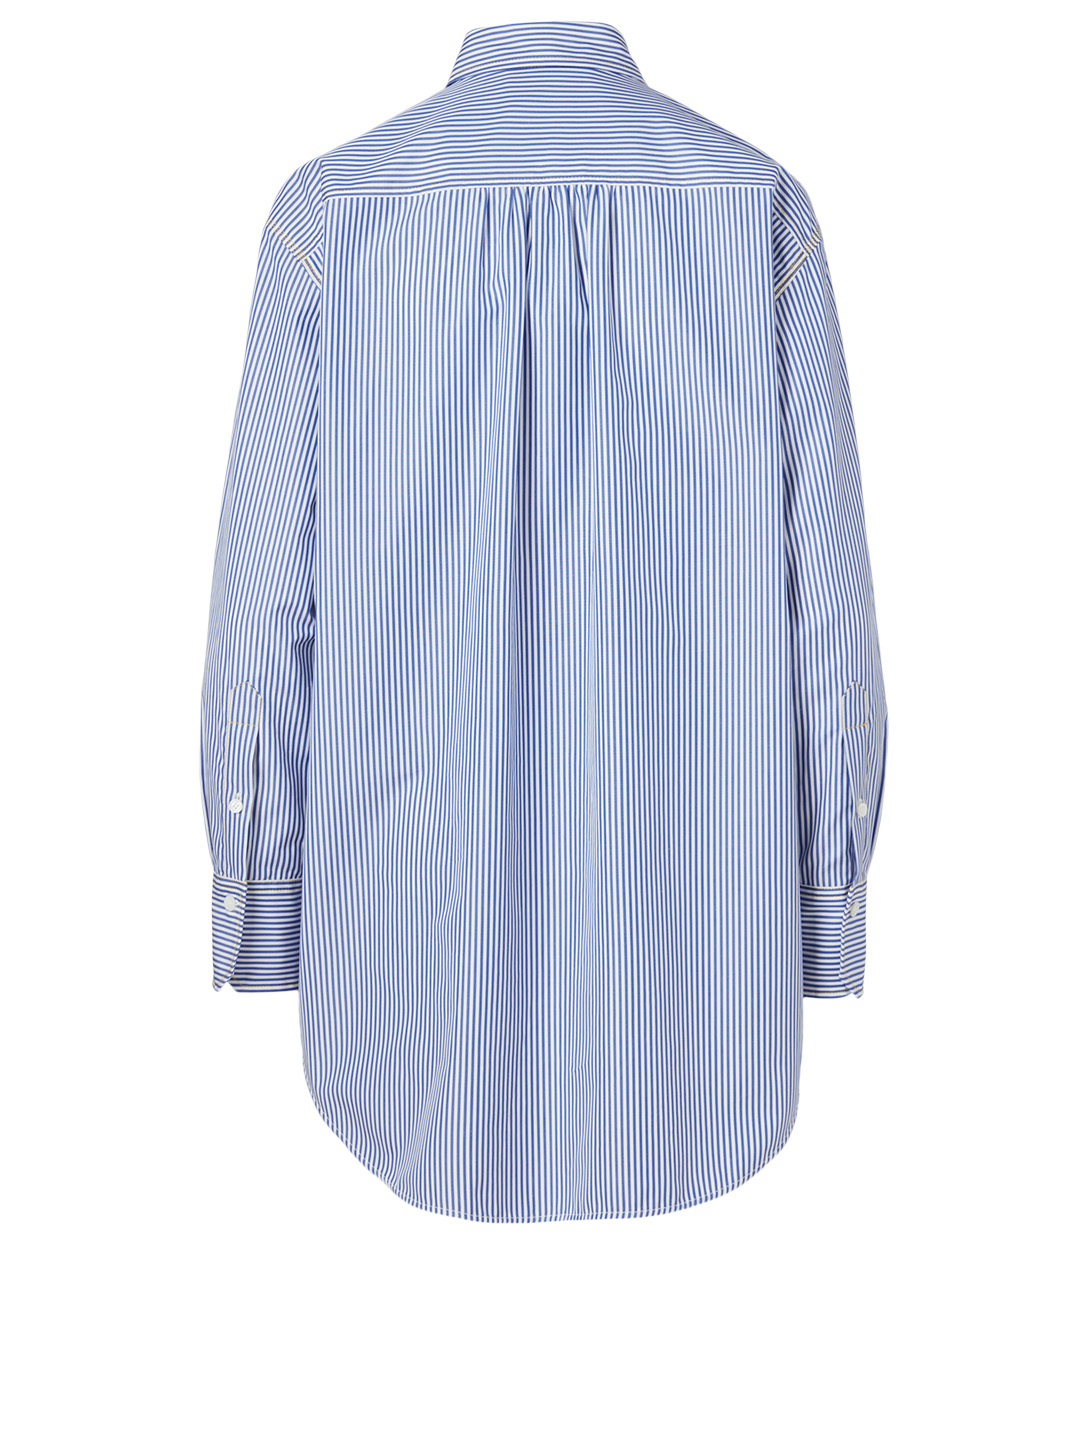 CHLOÉ Cotton Shirt In Striped Print Women's Blue